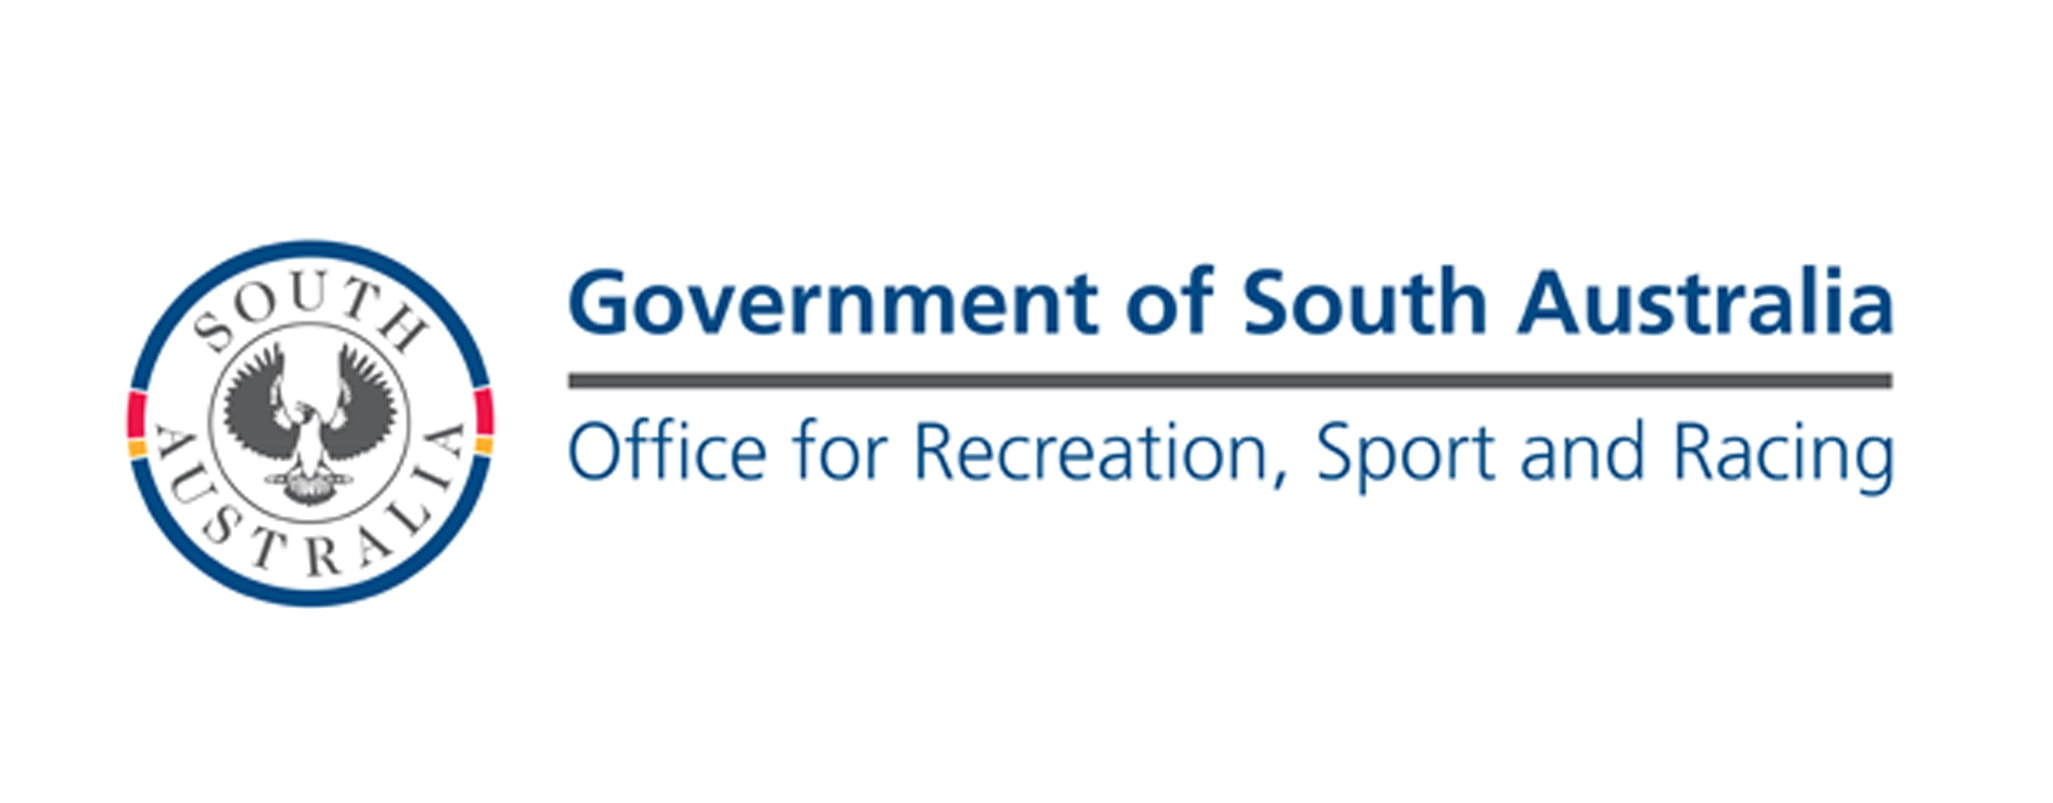 Office for Recreation Sport and Racing logo